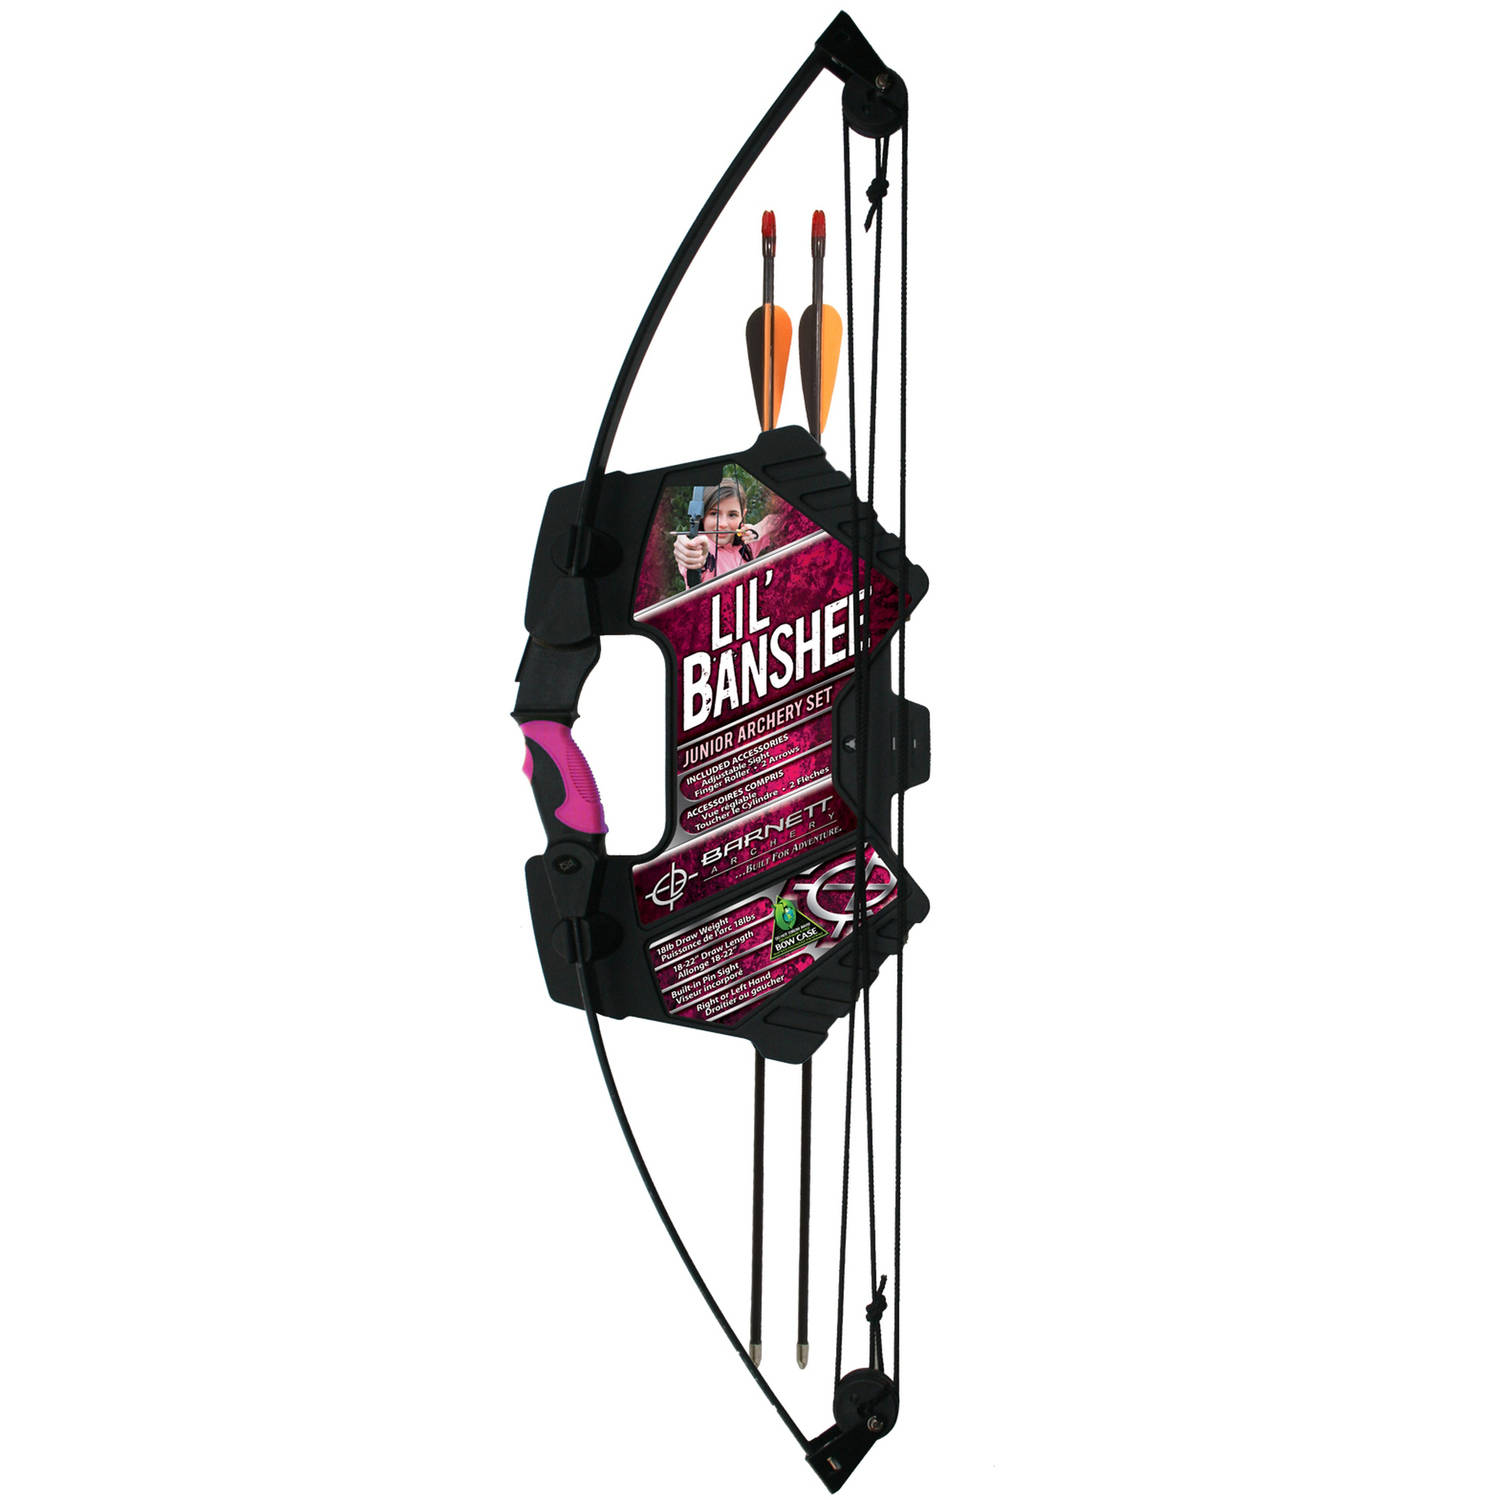 Barnett Sports & Outdoors Lil Banshee Jr. Archery Set, Pink